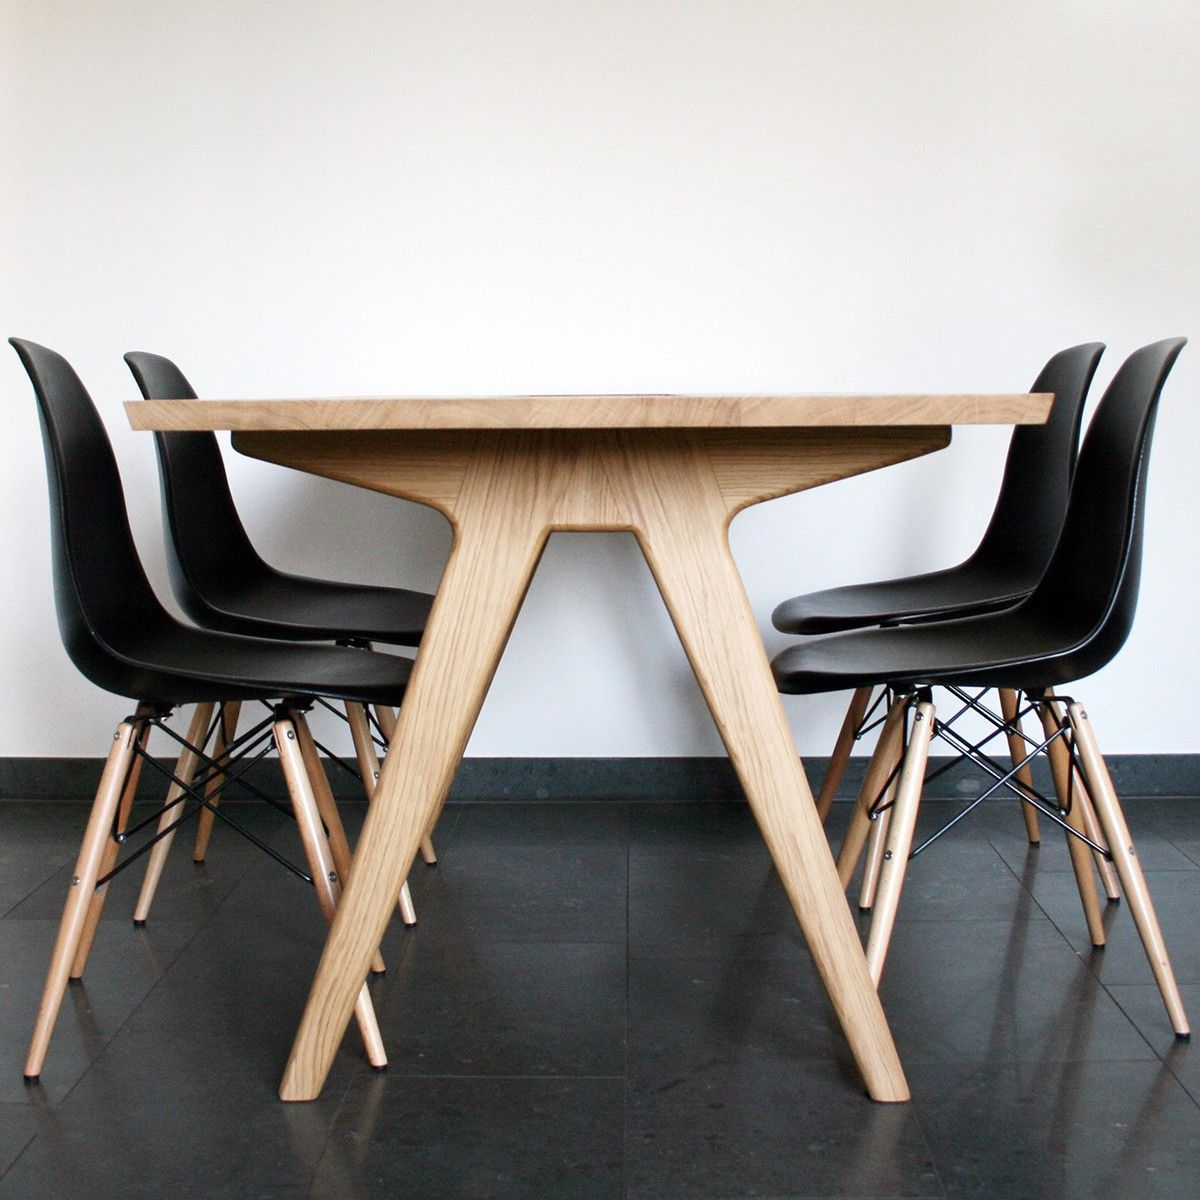 Eames Style Dining Table And Chairs Dining Table 43 Eames Chairs Pöytä Tisch Möbel Esstisch